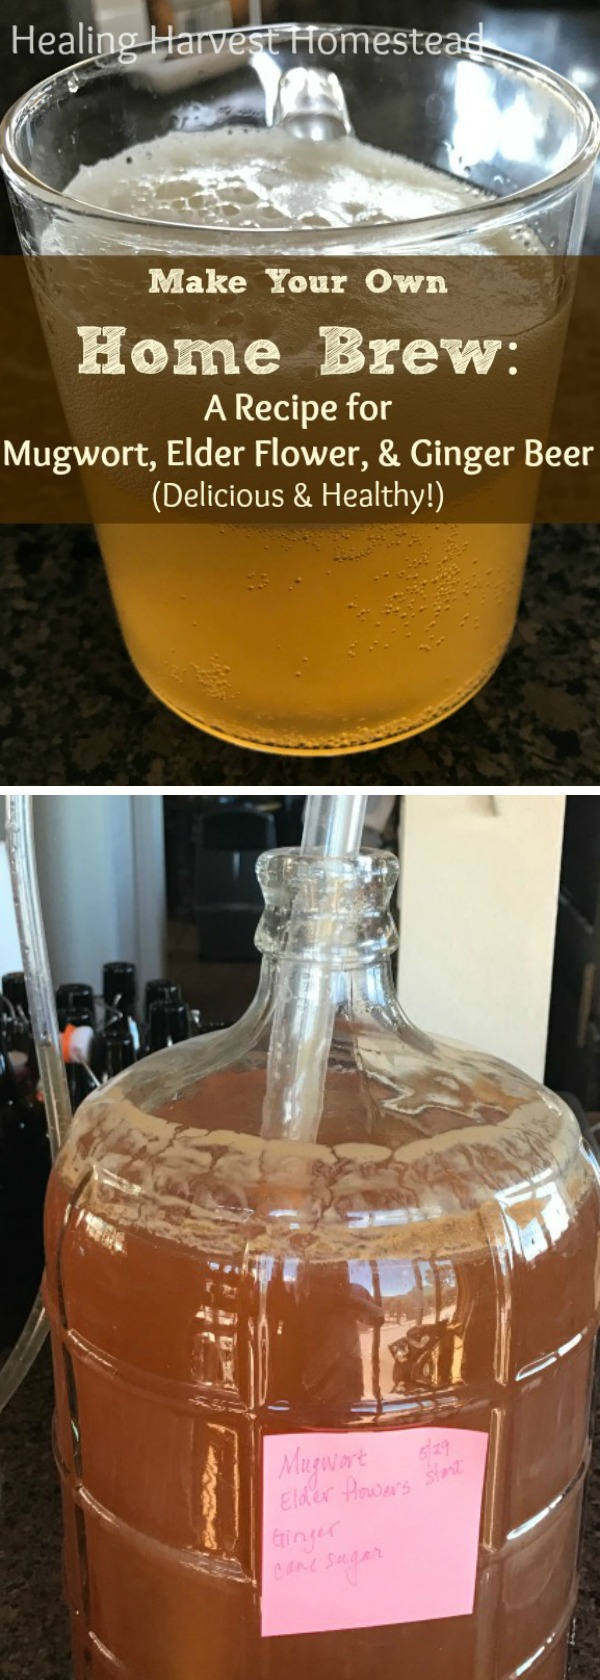 Learn the step-by-steps to making your own Herbal Beer! It's easy, creative, and healthy! I think everyone should be making their own beer and ale! :-) SO much better than the commercial versions. This recipe is for Mugwort, Elder Flower, and Ginger Beer---It is seriously delicious and refreshing!